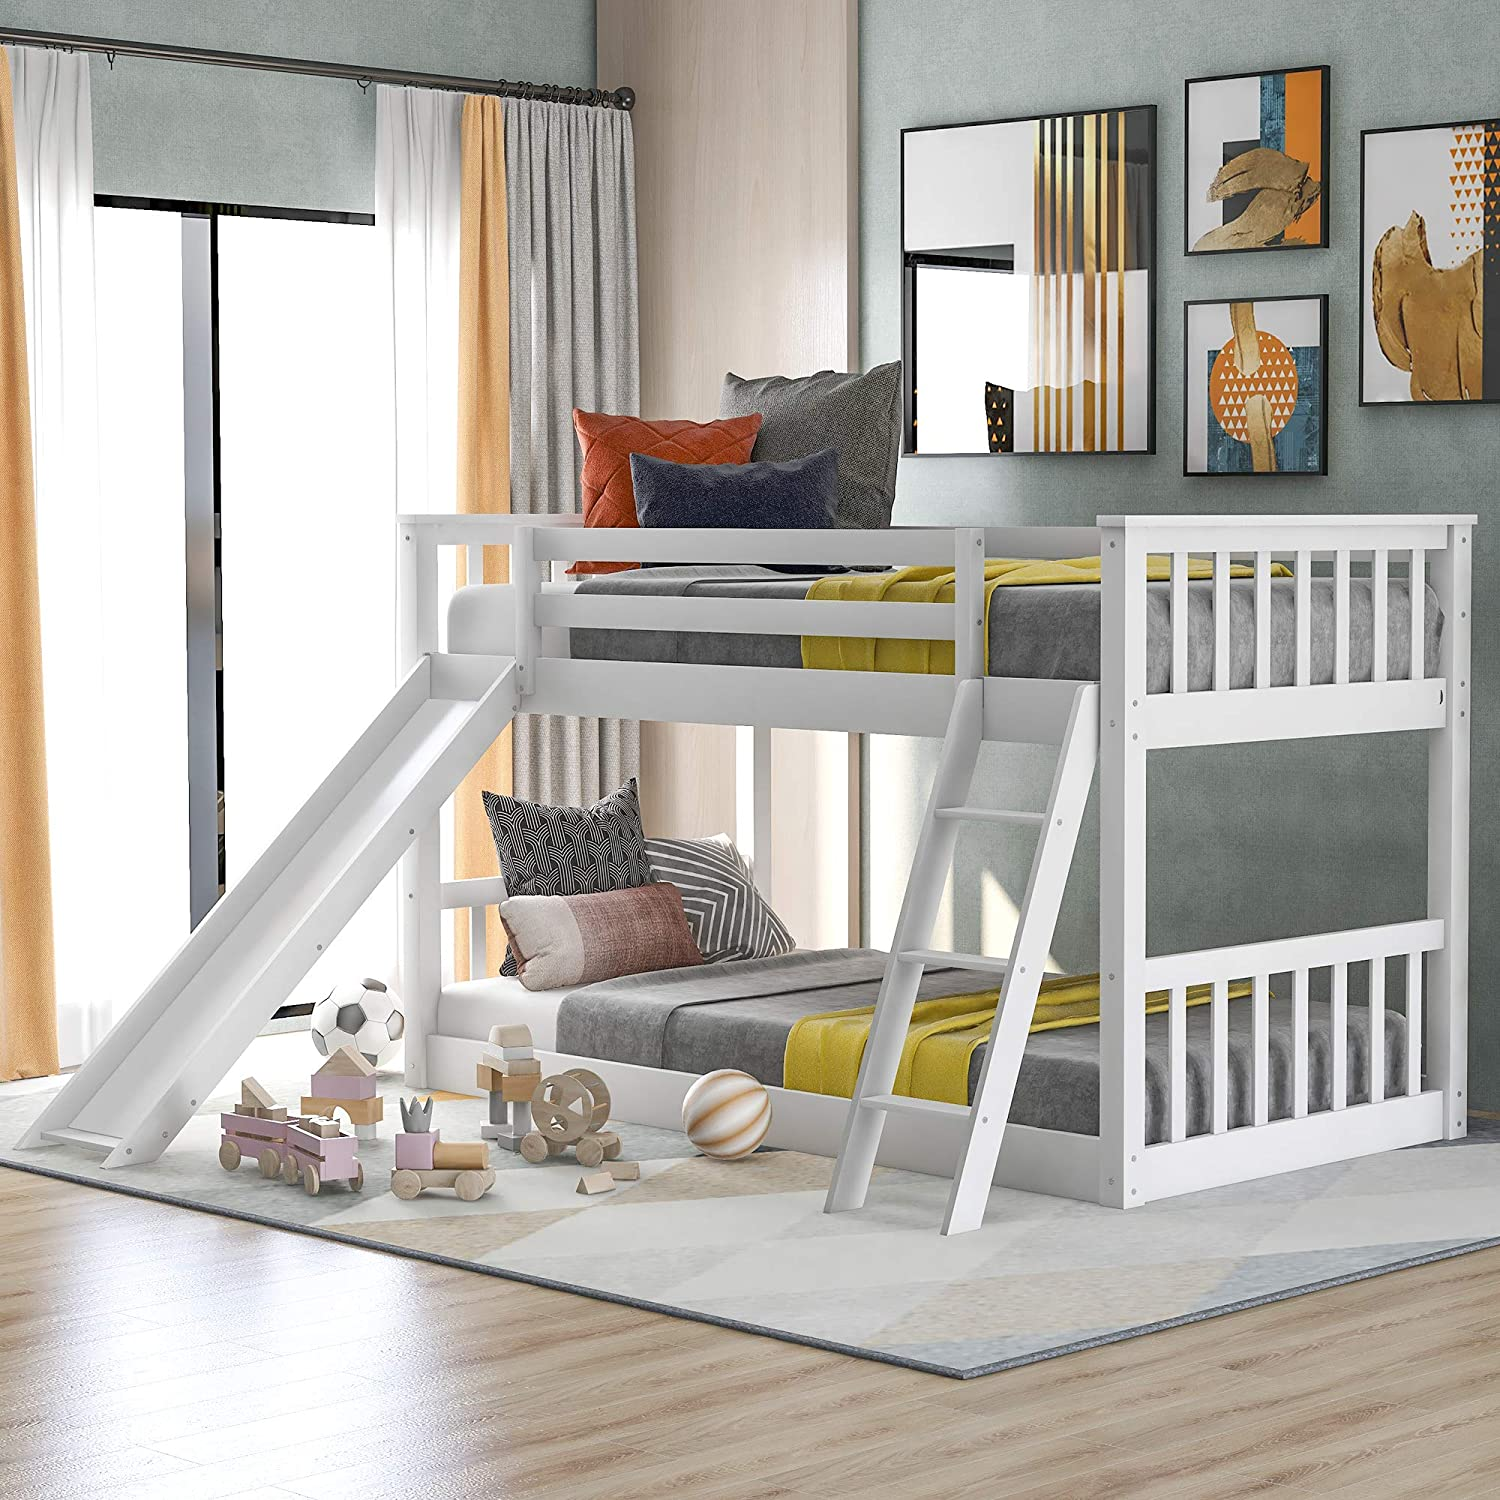 Tulsa Mall Solid Wood Low Bunk Bed Floor Kids Twin for Over Tampa Mall